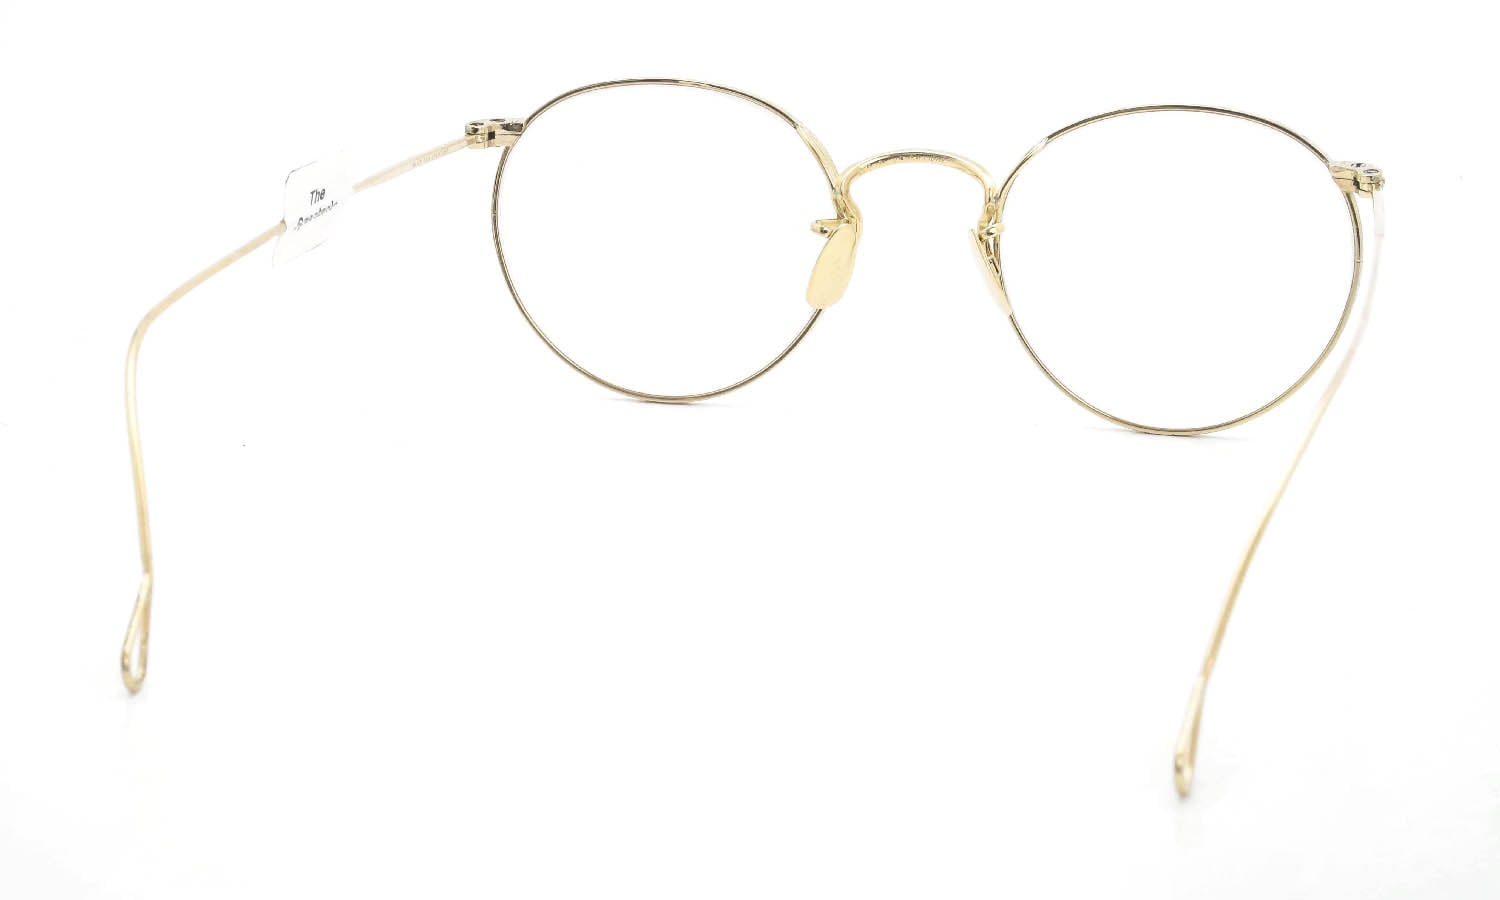 Artcraft Optical 1937 Artbilt P-5 YG 1/10 12KGF 46-22 12k-Solid-Gold-Nose-pad